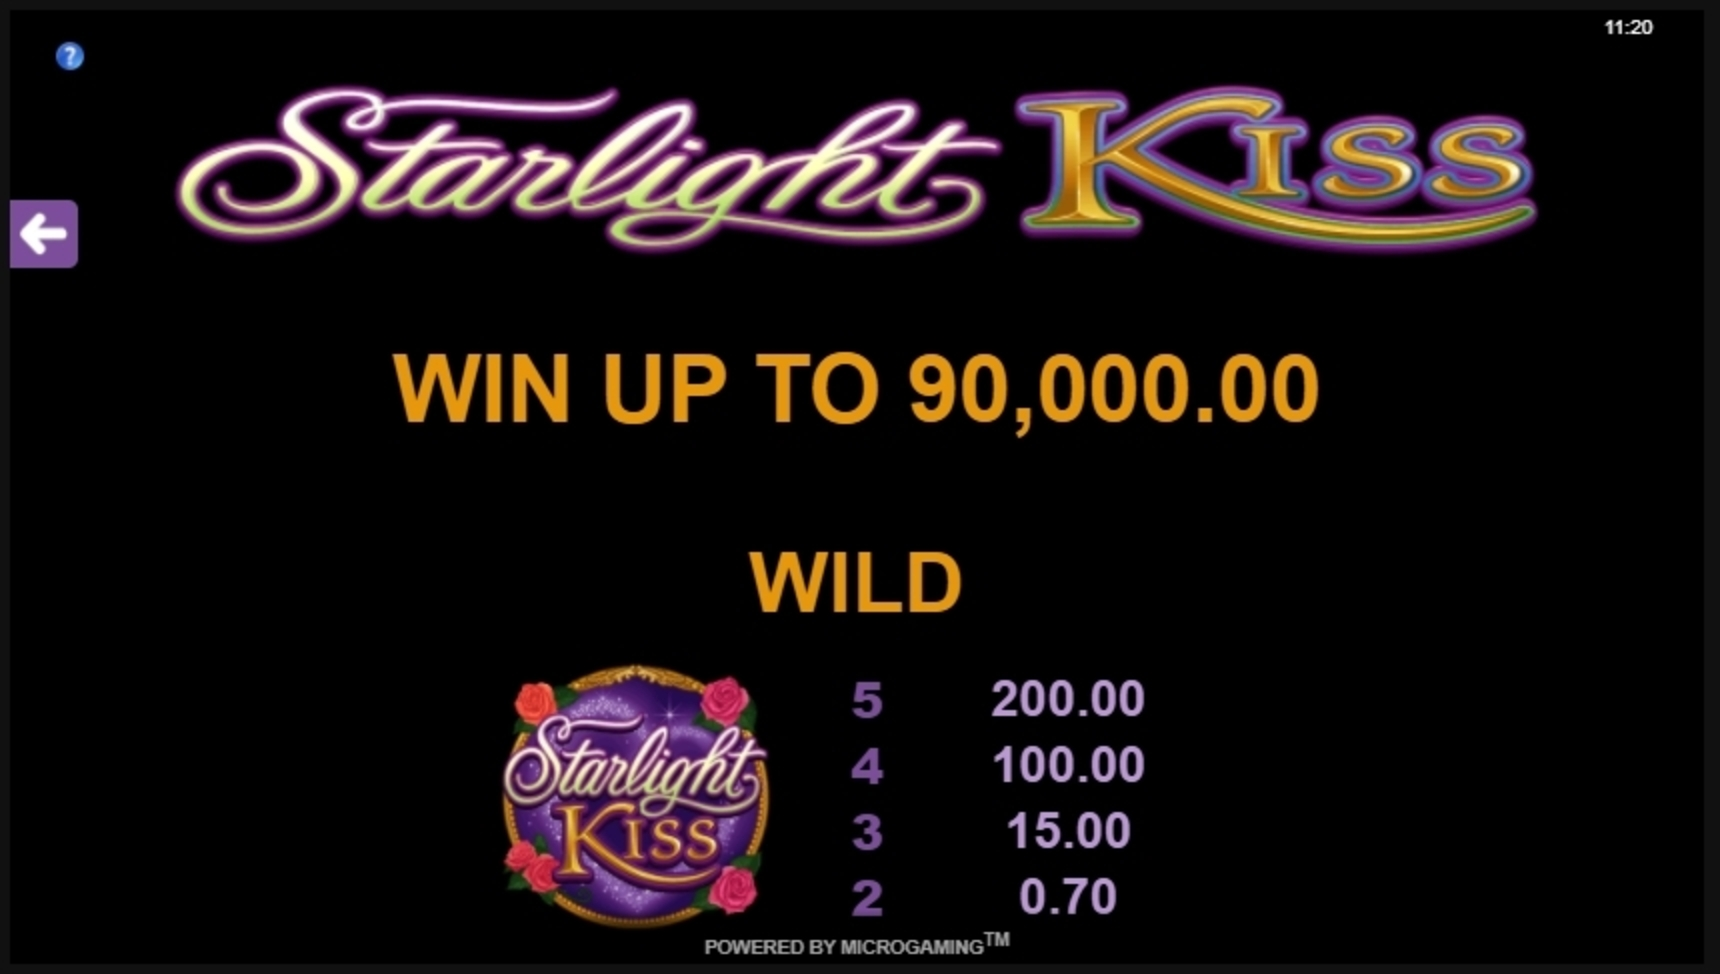 Info of Starlight Kiss Slot Game by Microgaming